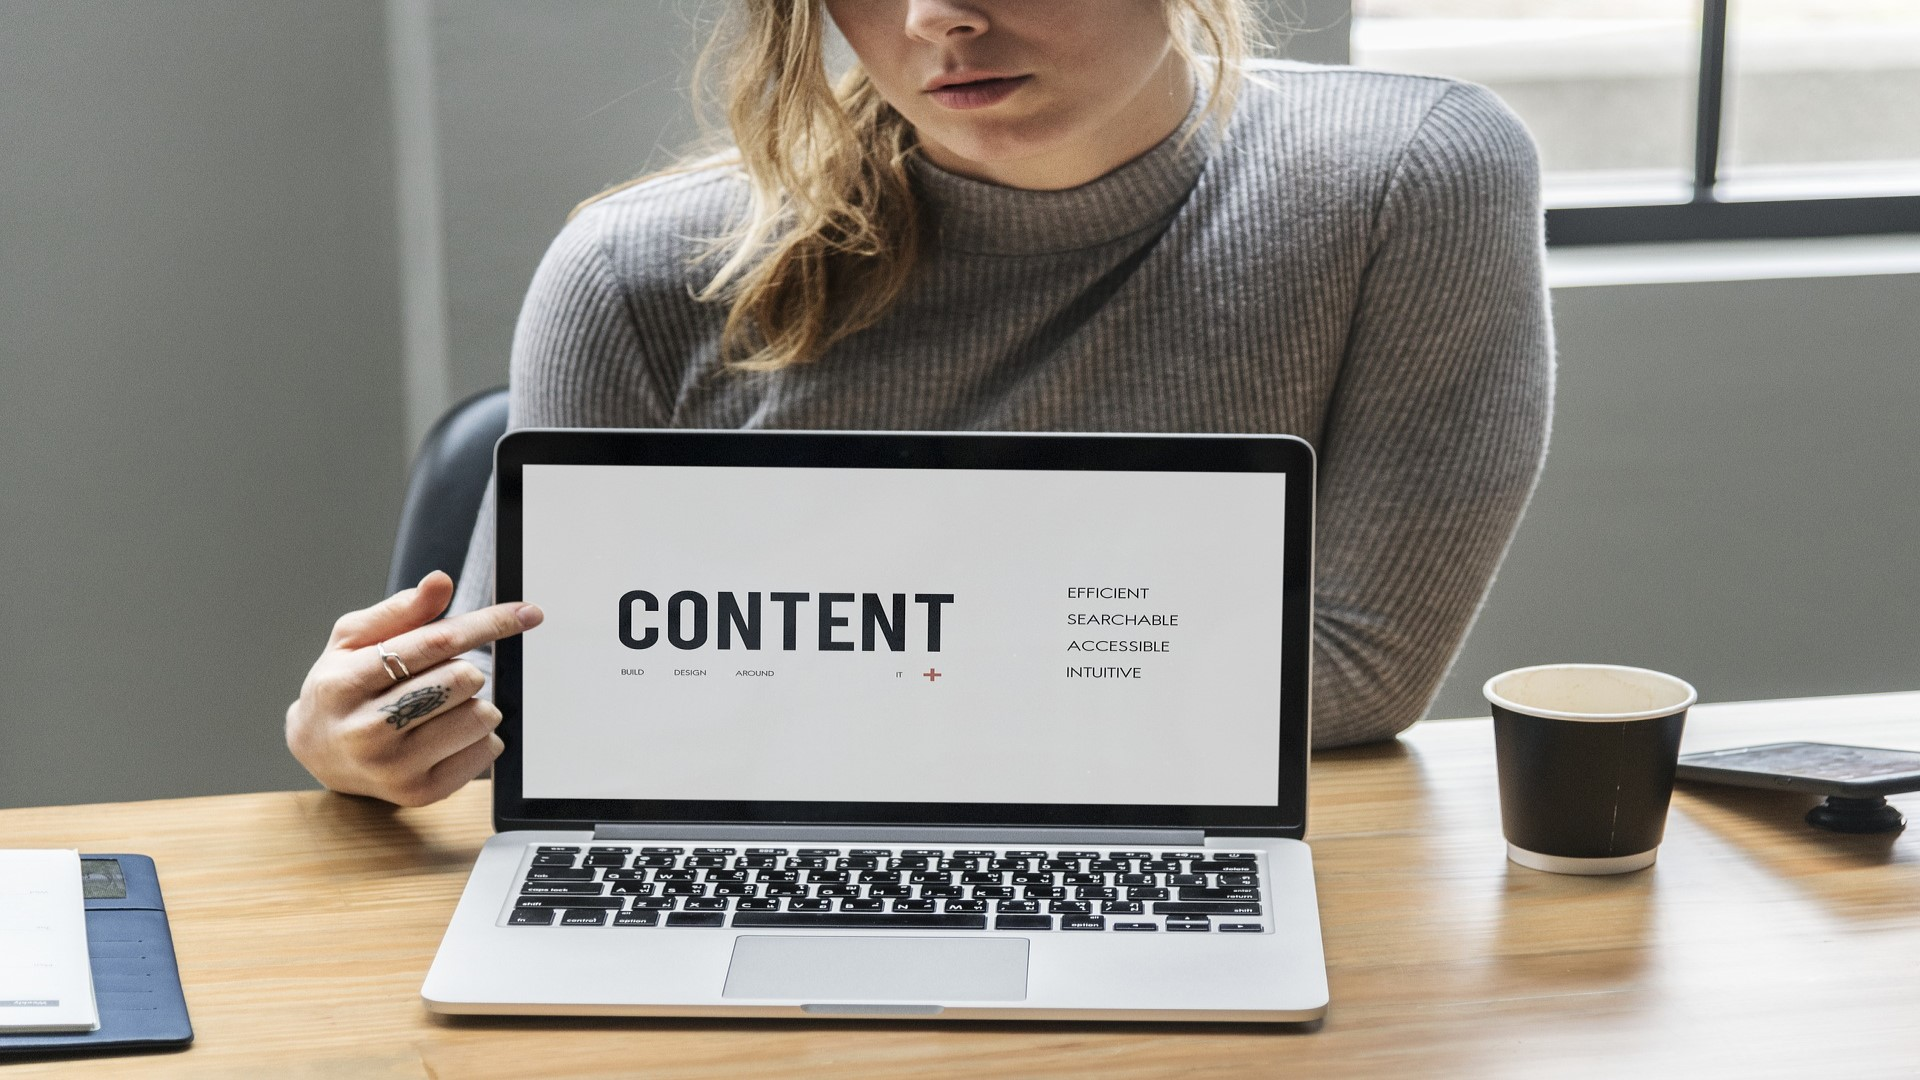 Content can help to a better online reputation.